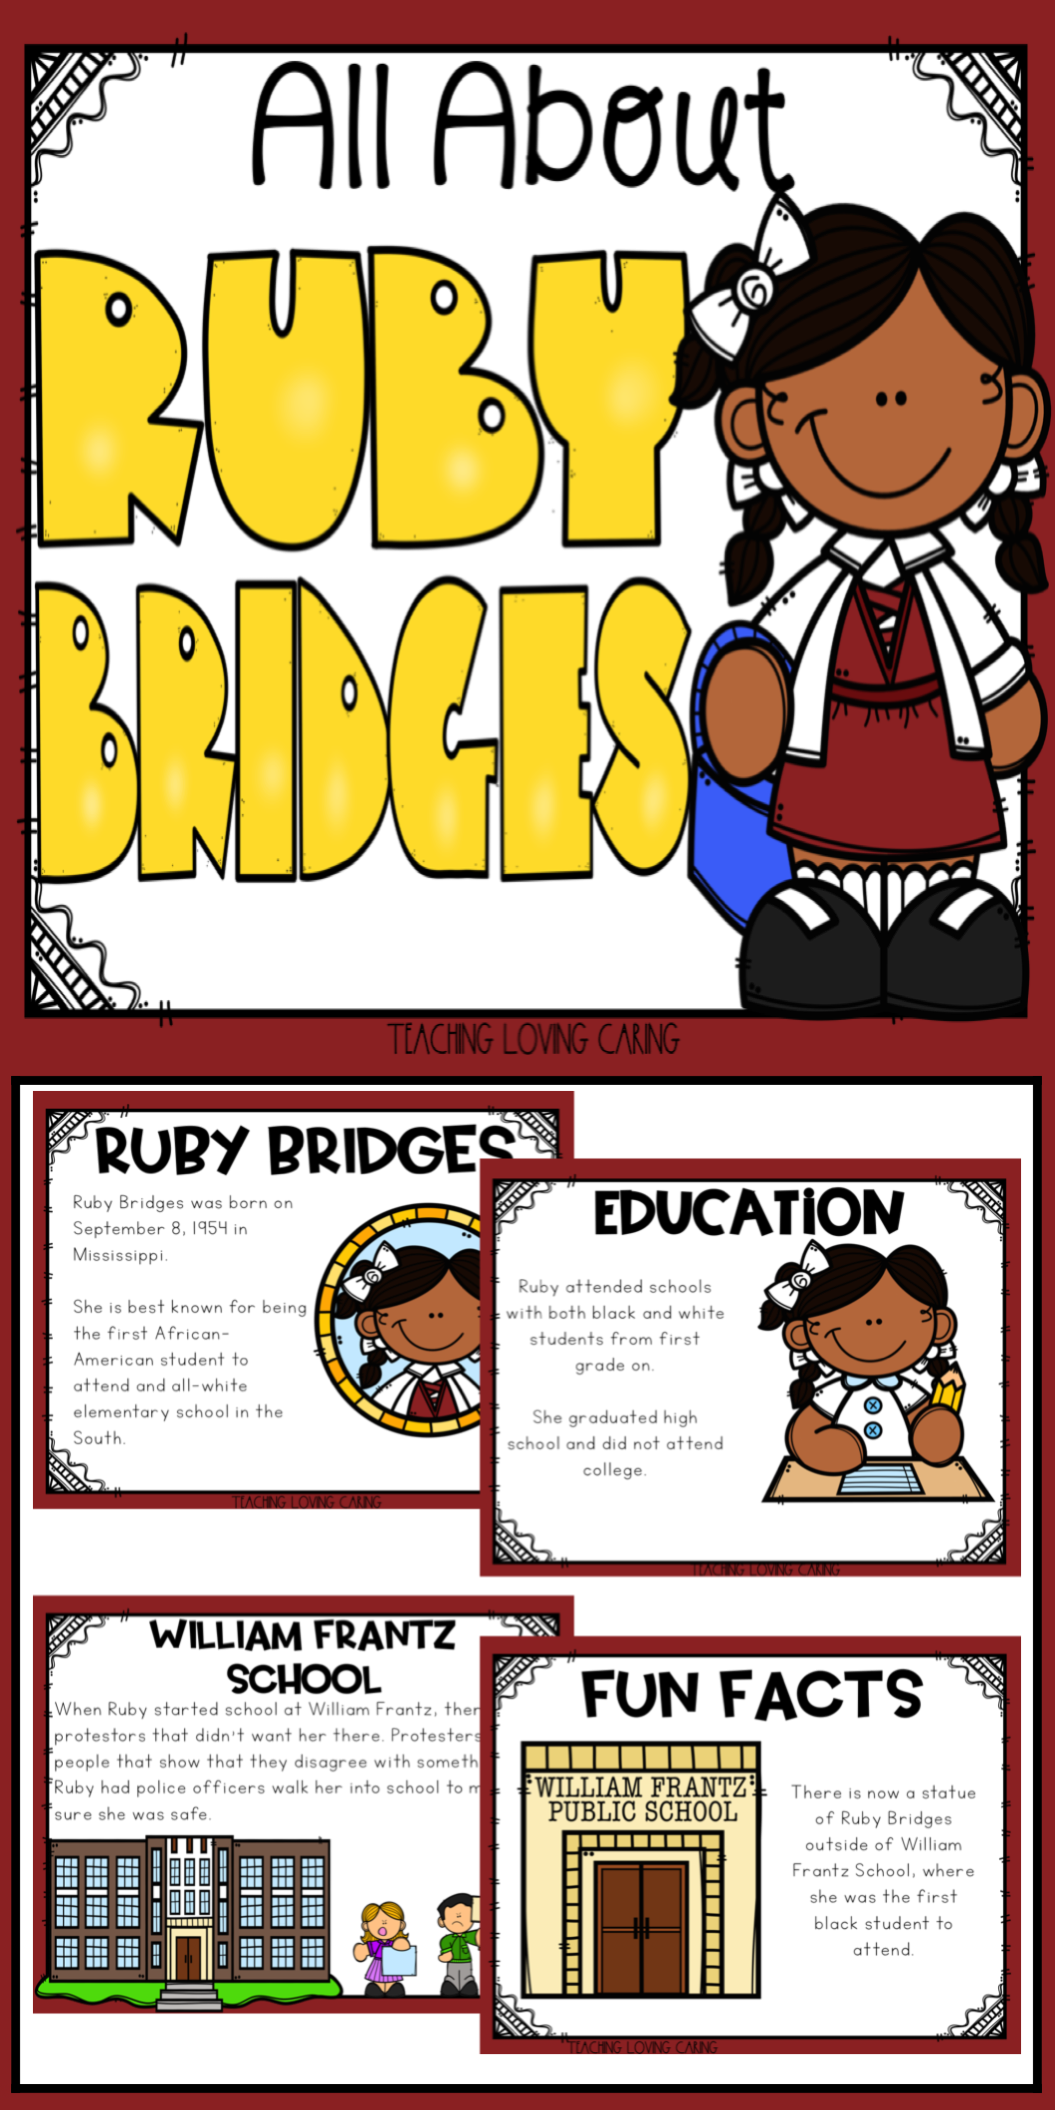 All About Ruby Bridges